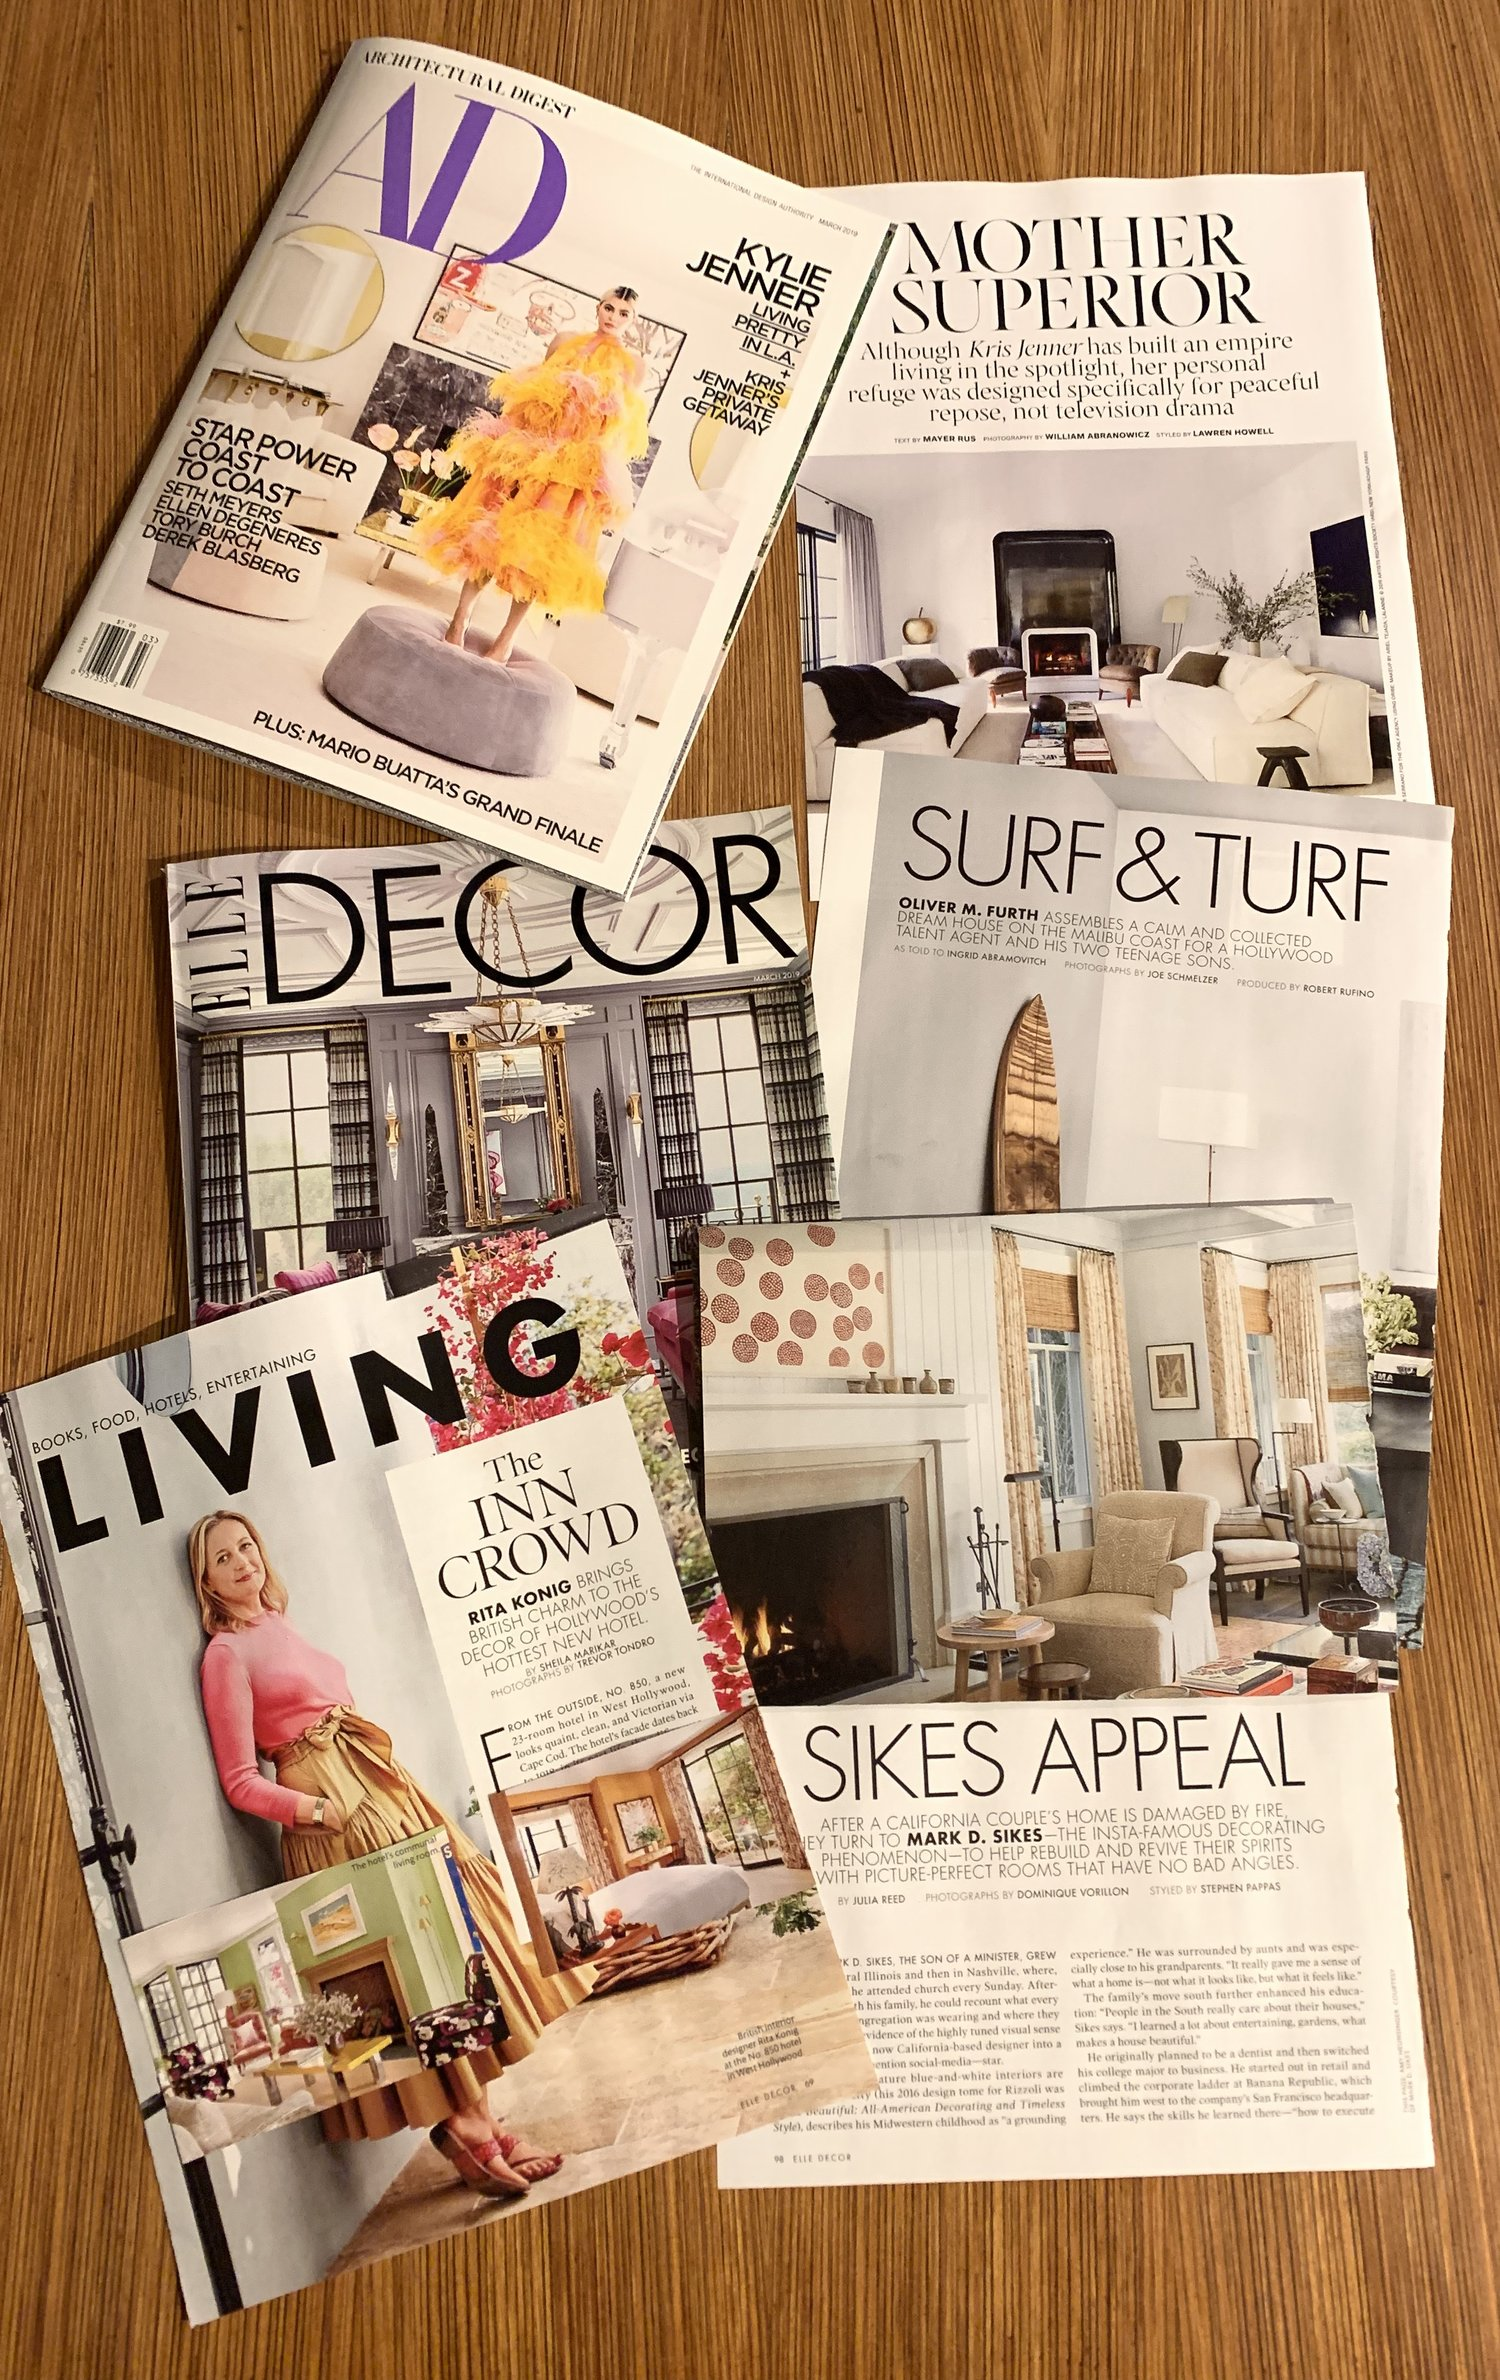 Valley Drapery features in ELLE Decor and Architectural Digest